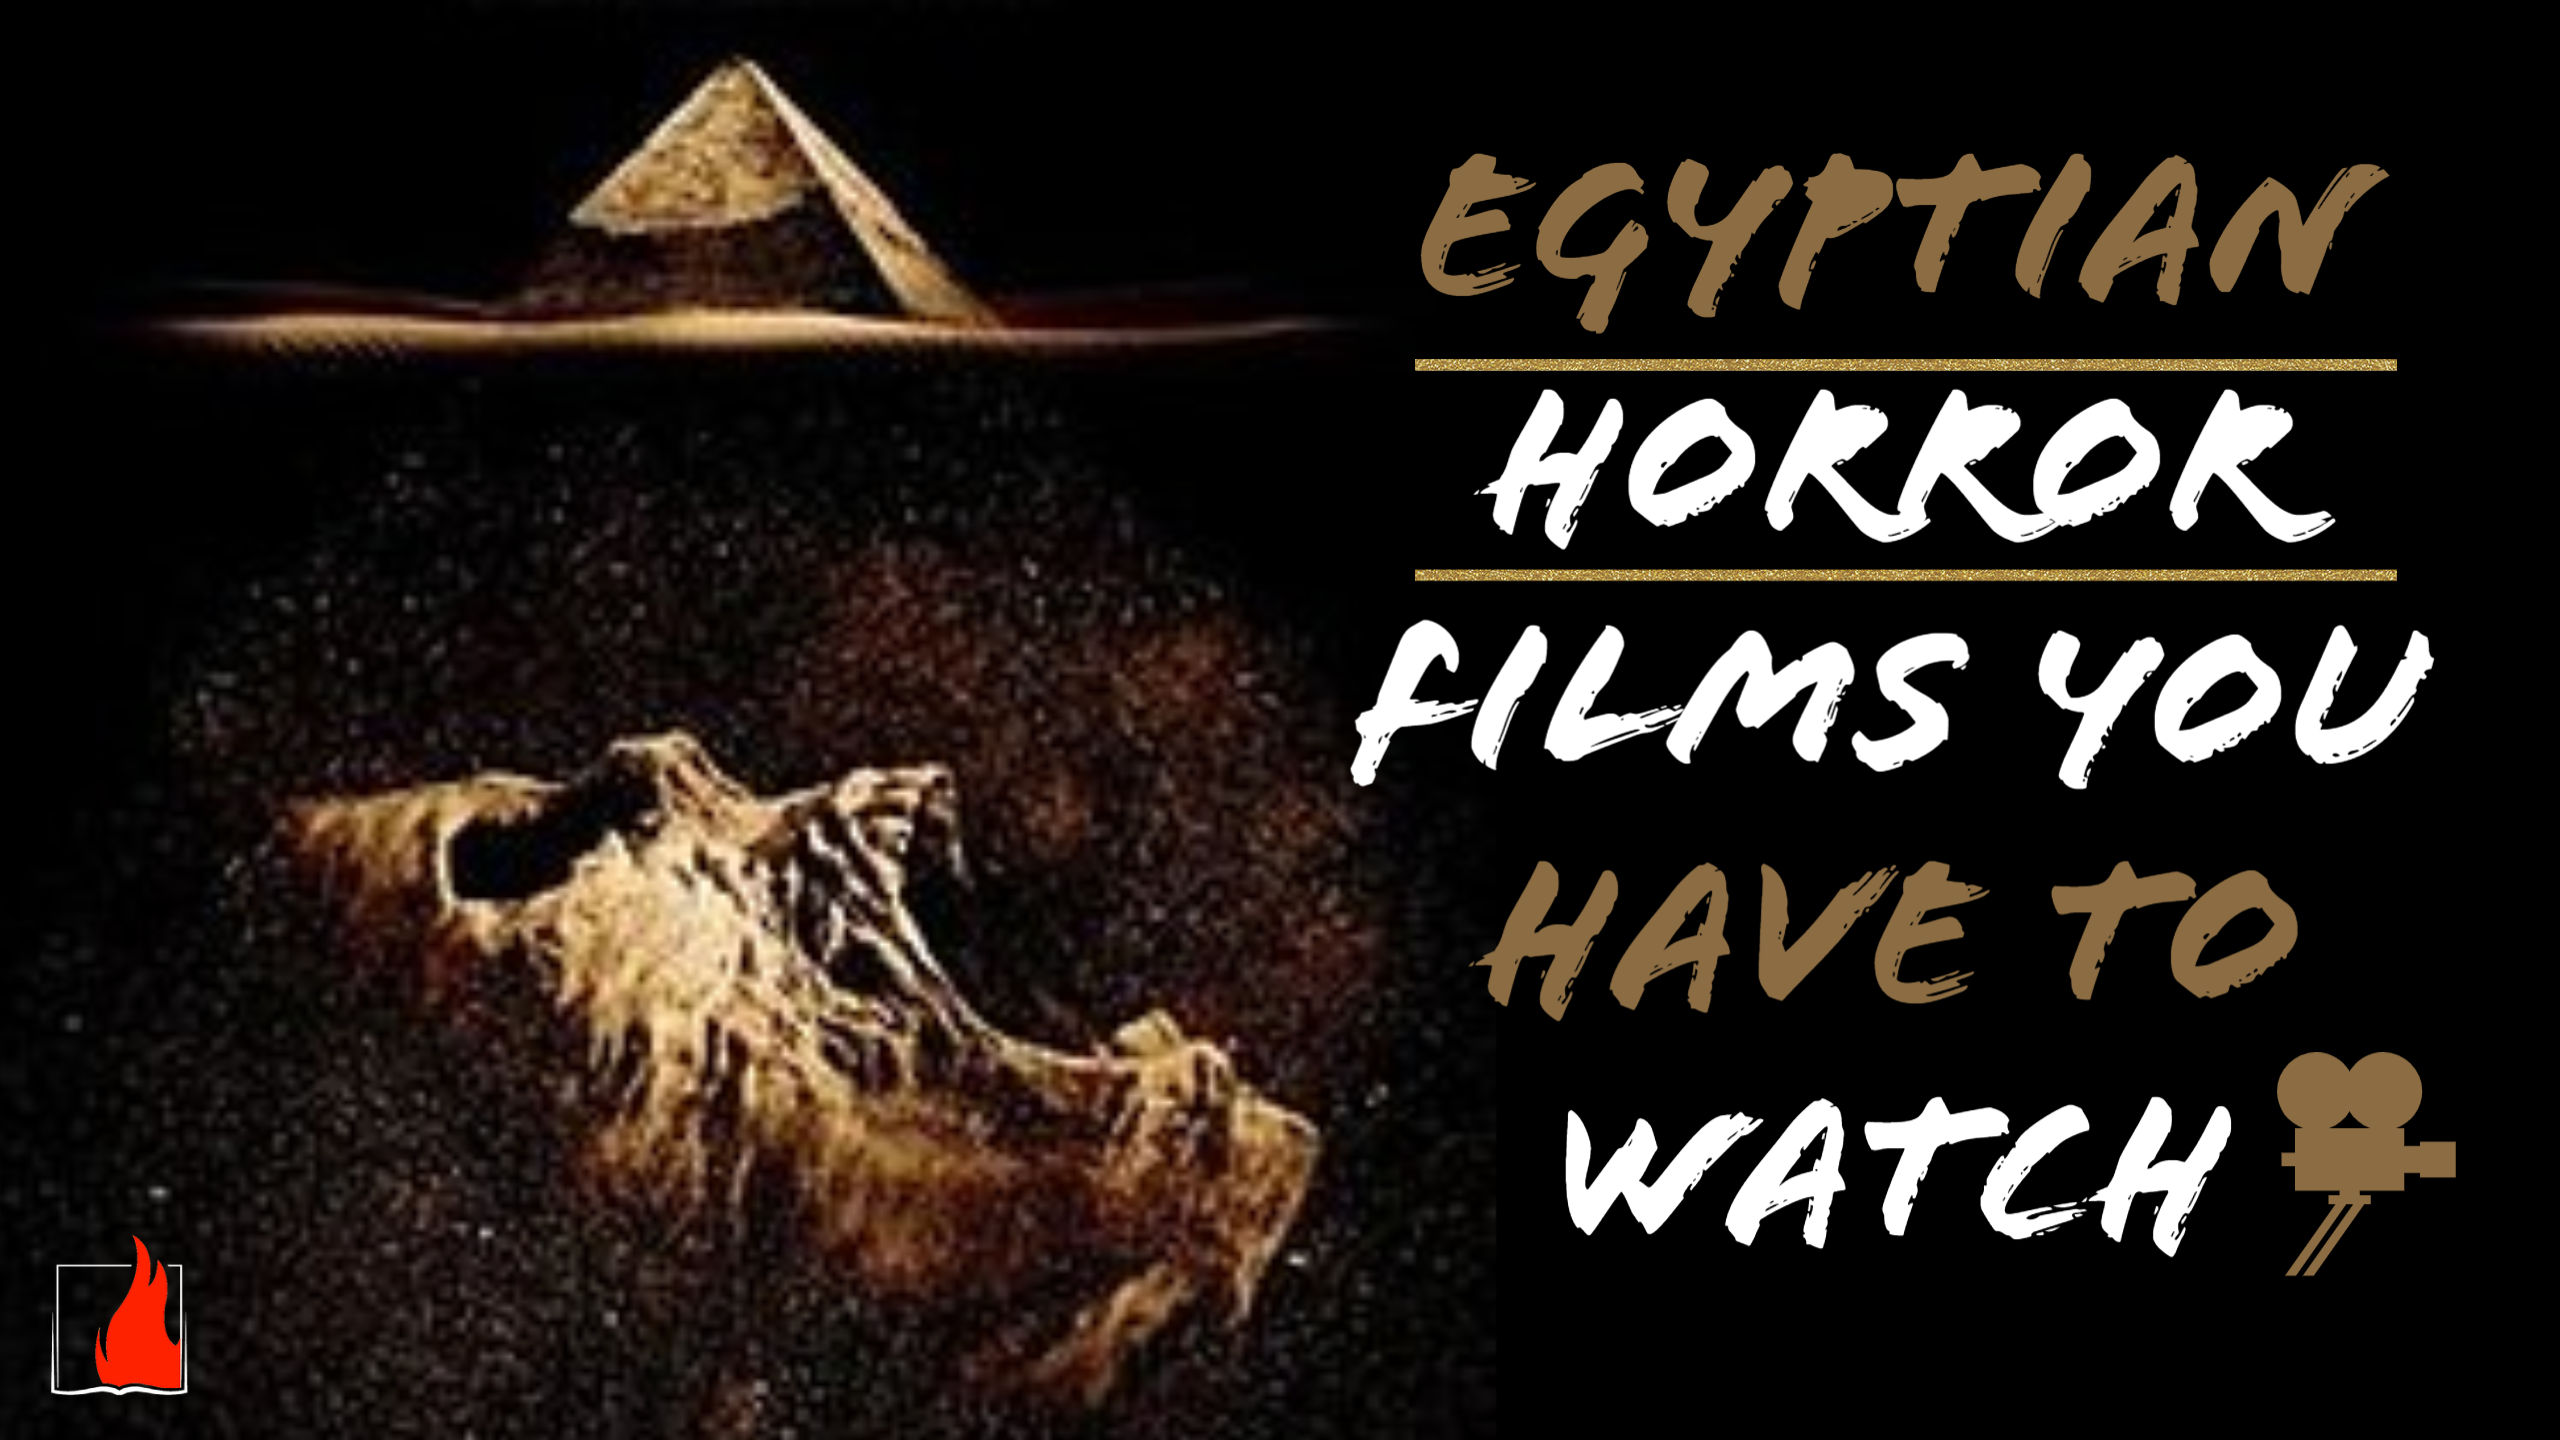 Egyptian Horror Films You Have to Watch!